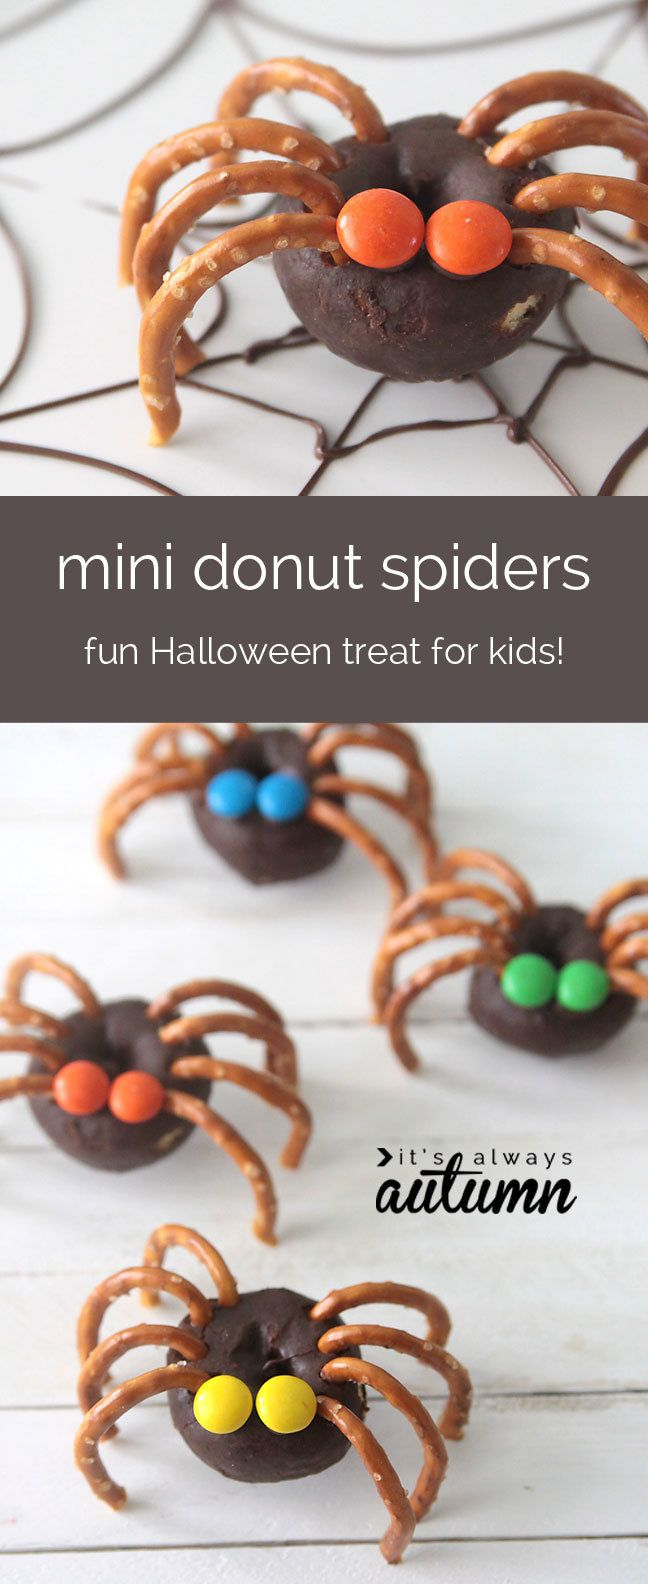 free and Treats      usa Treats Treats  ideas  Best Halloween Halloween sale Holiday   The Spiders